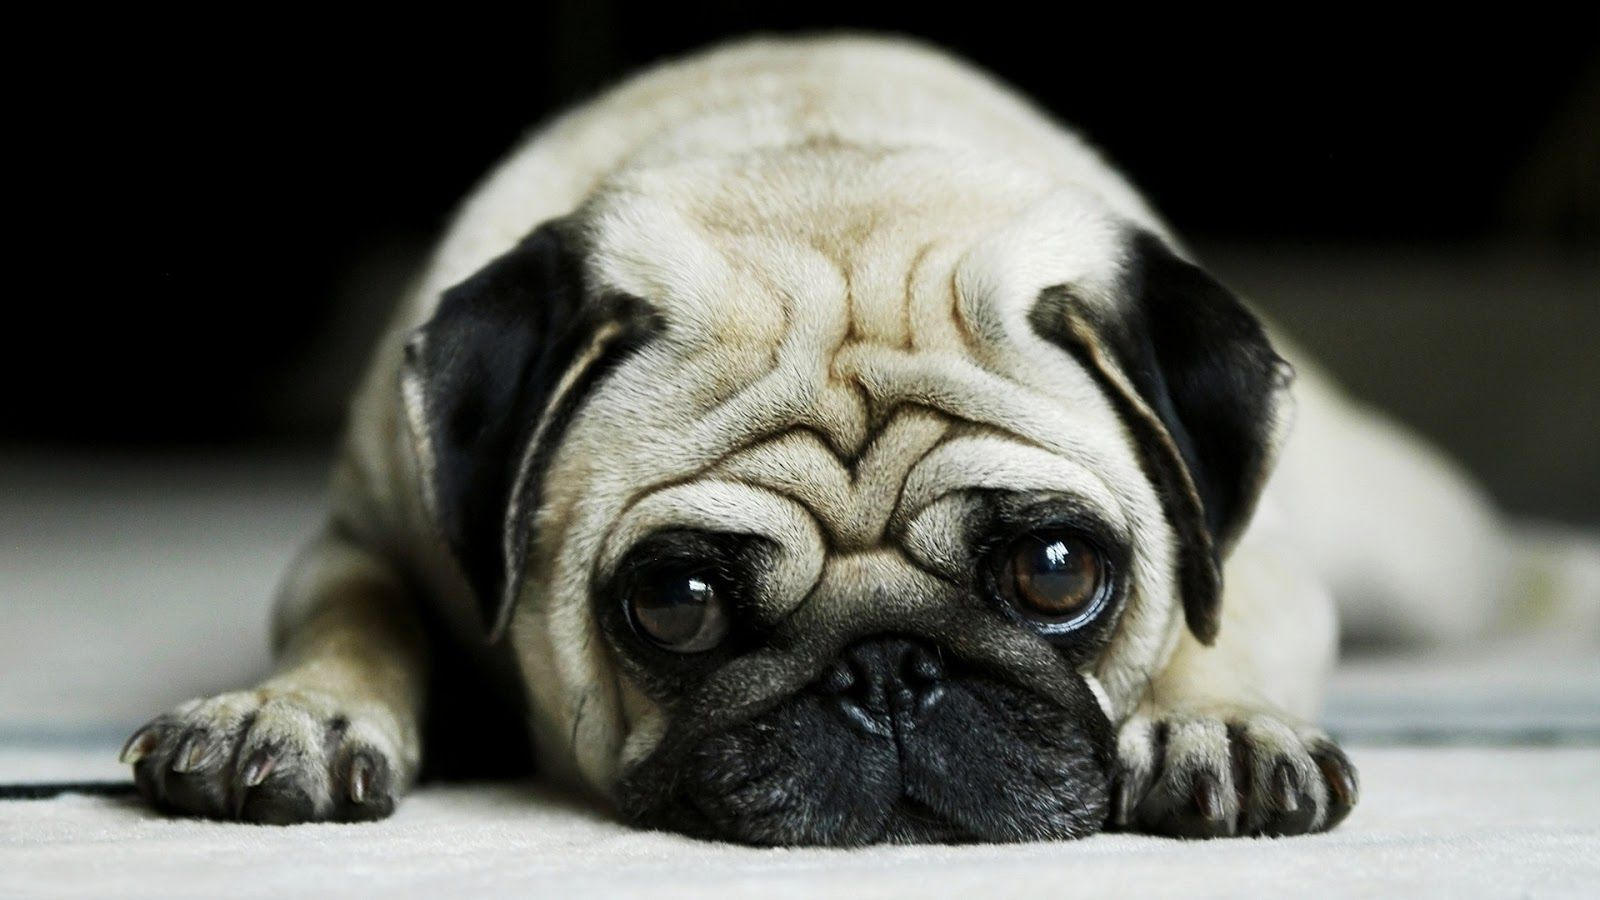 Pug Dog Hd Wallpaper For Laptop Posted By John Johnson